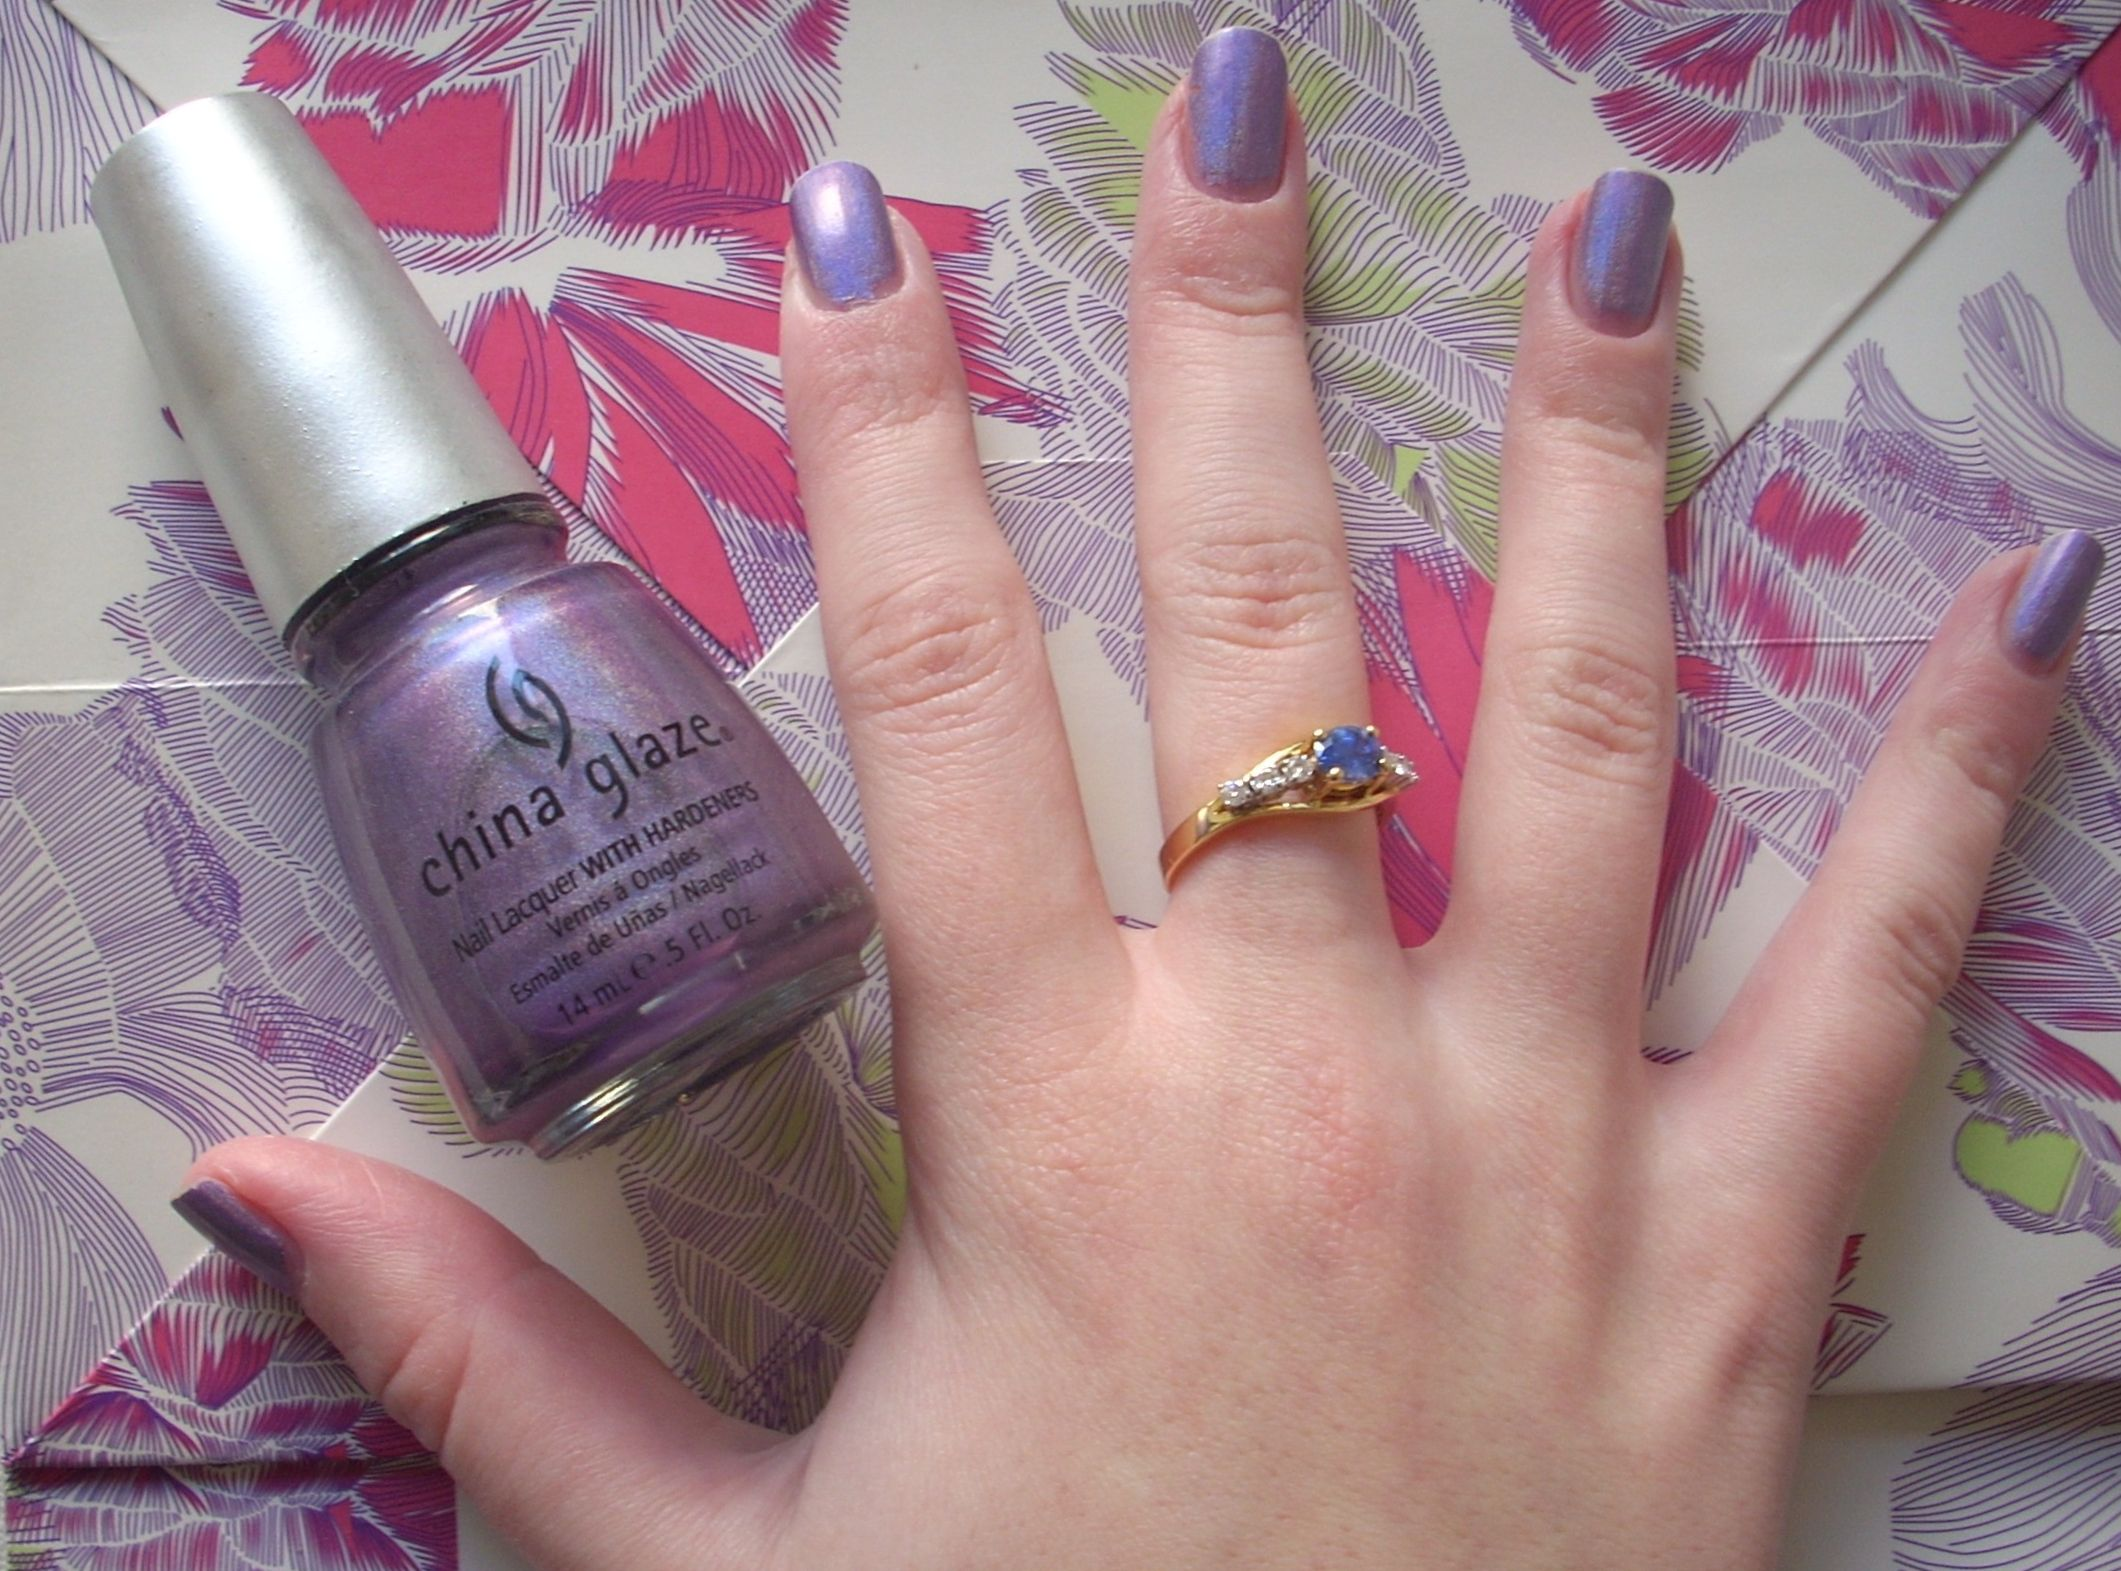 China Glaze IDK nail polish review | Through The Looking Glass